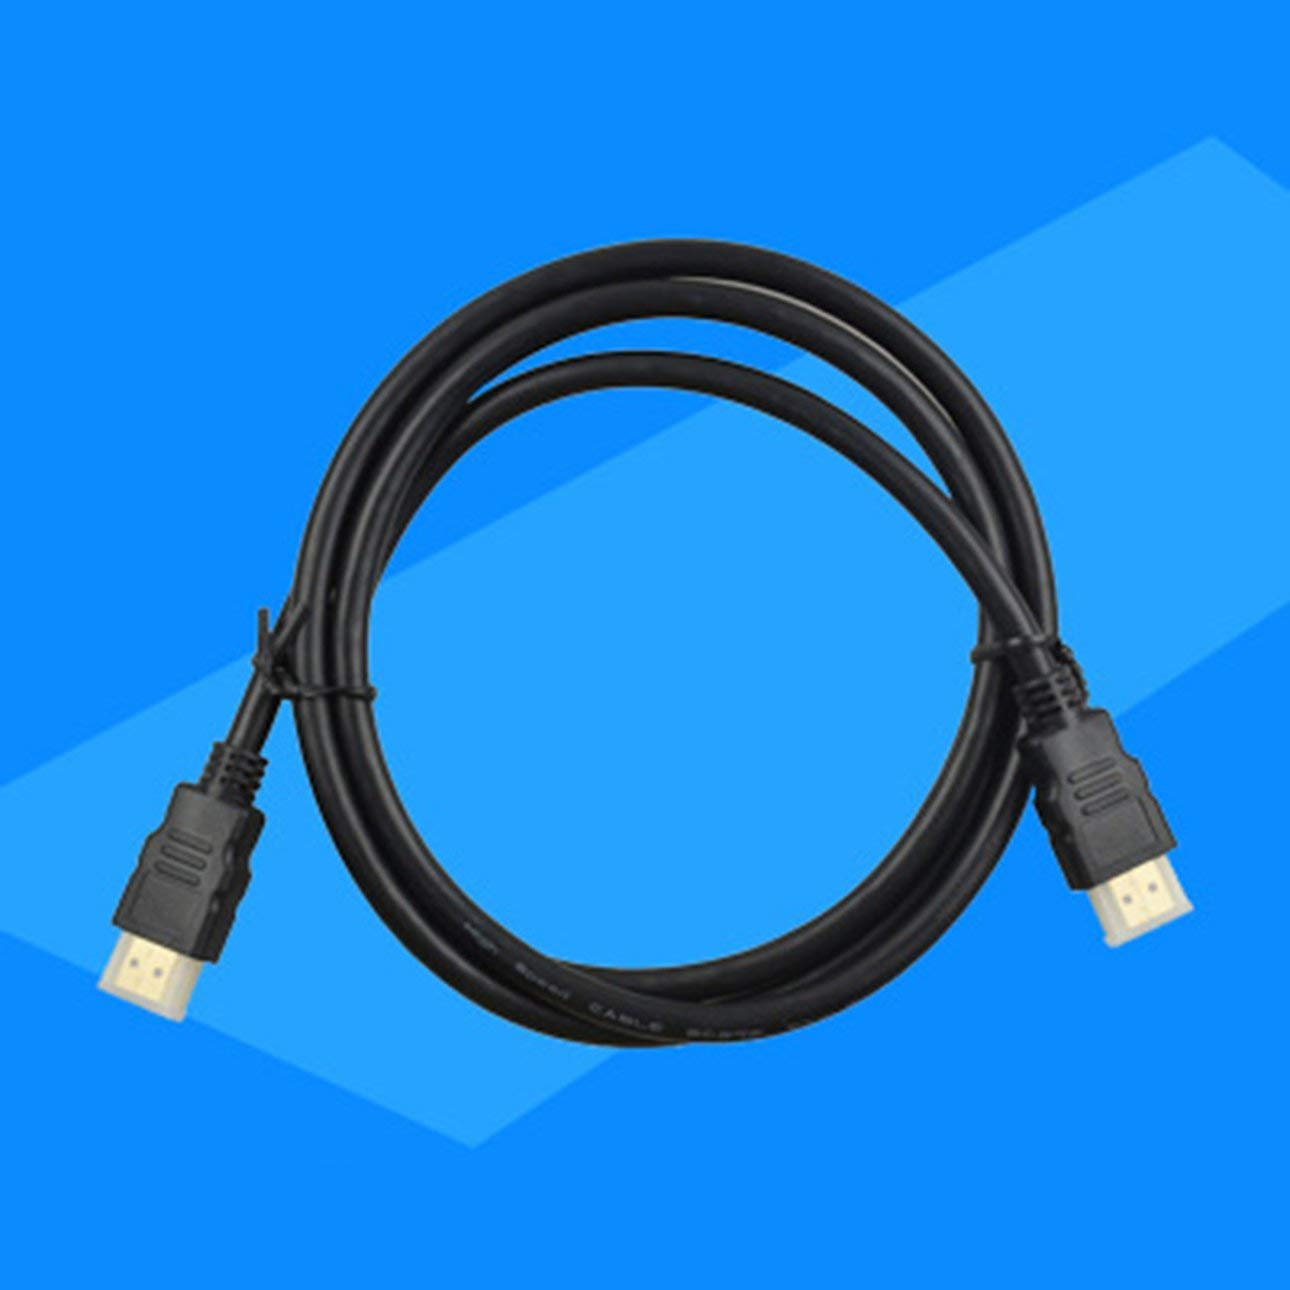 Liobaba HDMI Cable 1.5 m hdmi HD Cable HDMI1.4V HD Video Cable